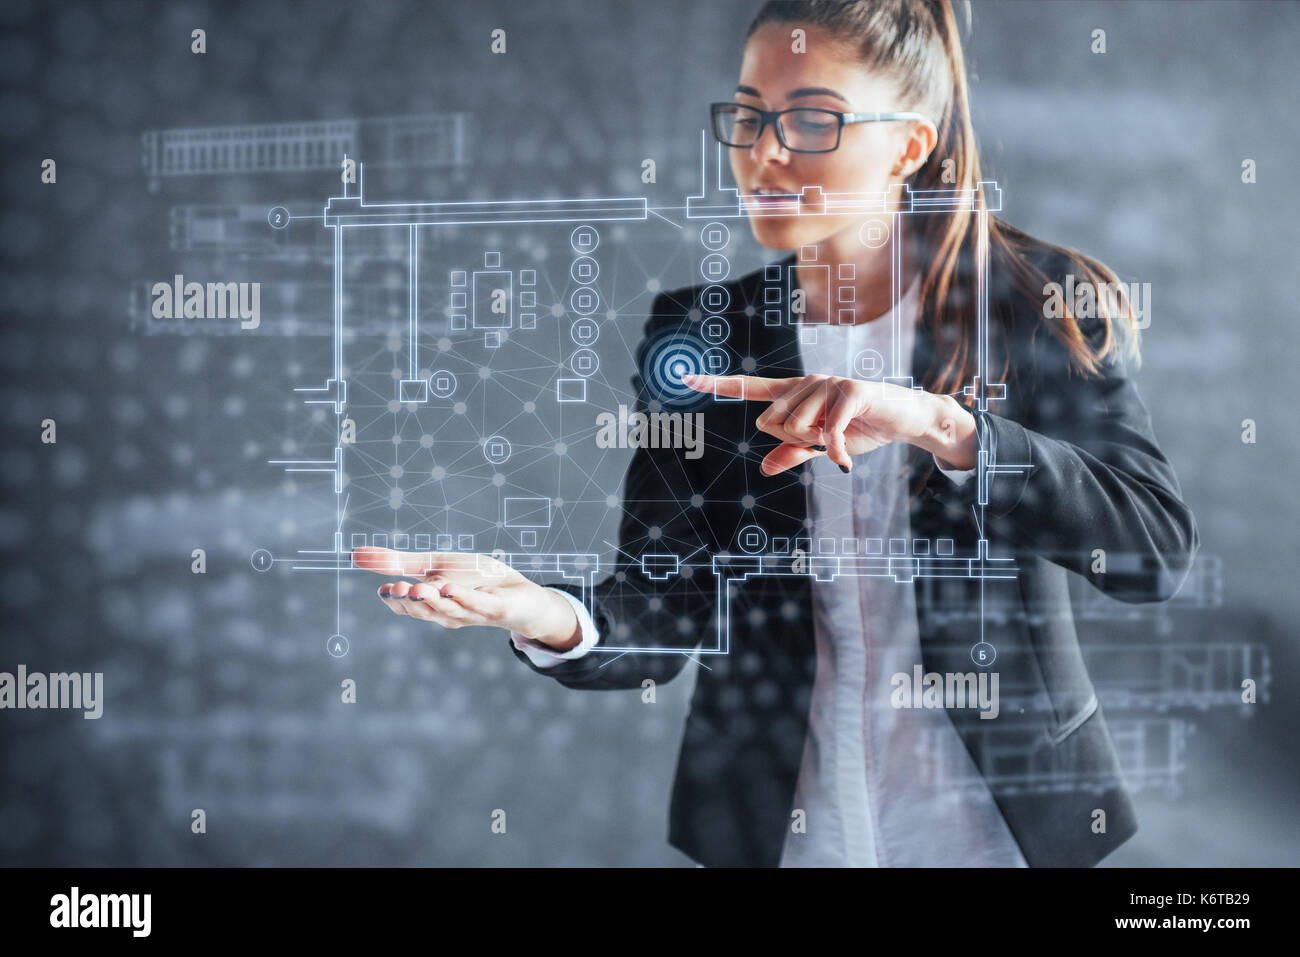 The person at the board of a financial dashboard of key indicators of stock market performance and business intelligence. - Stock Image